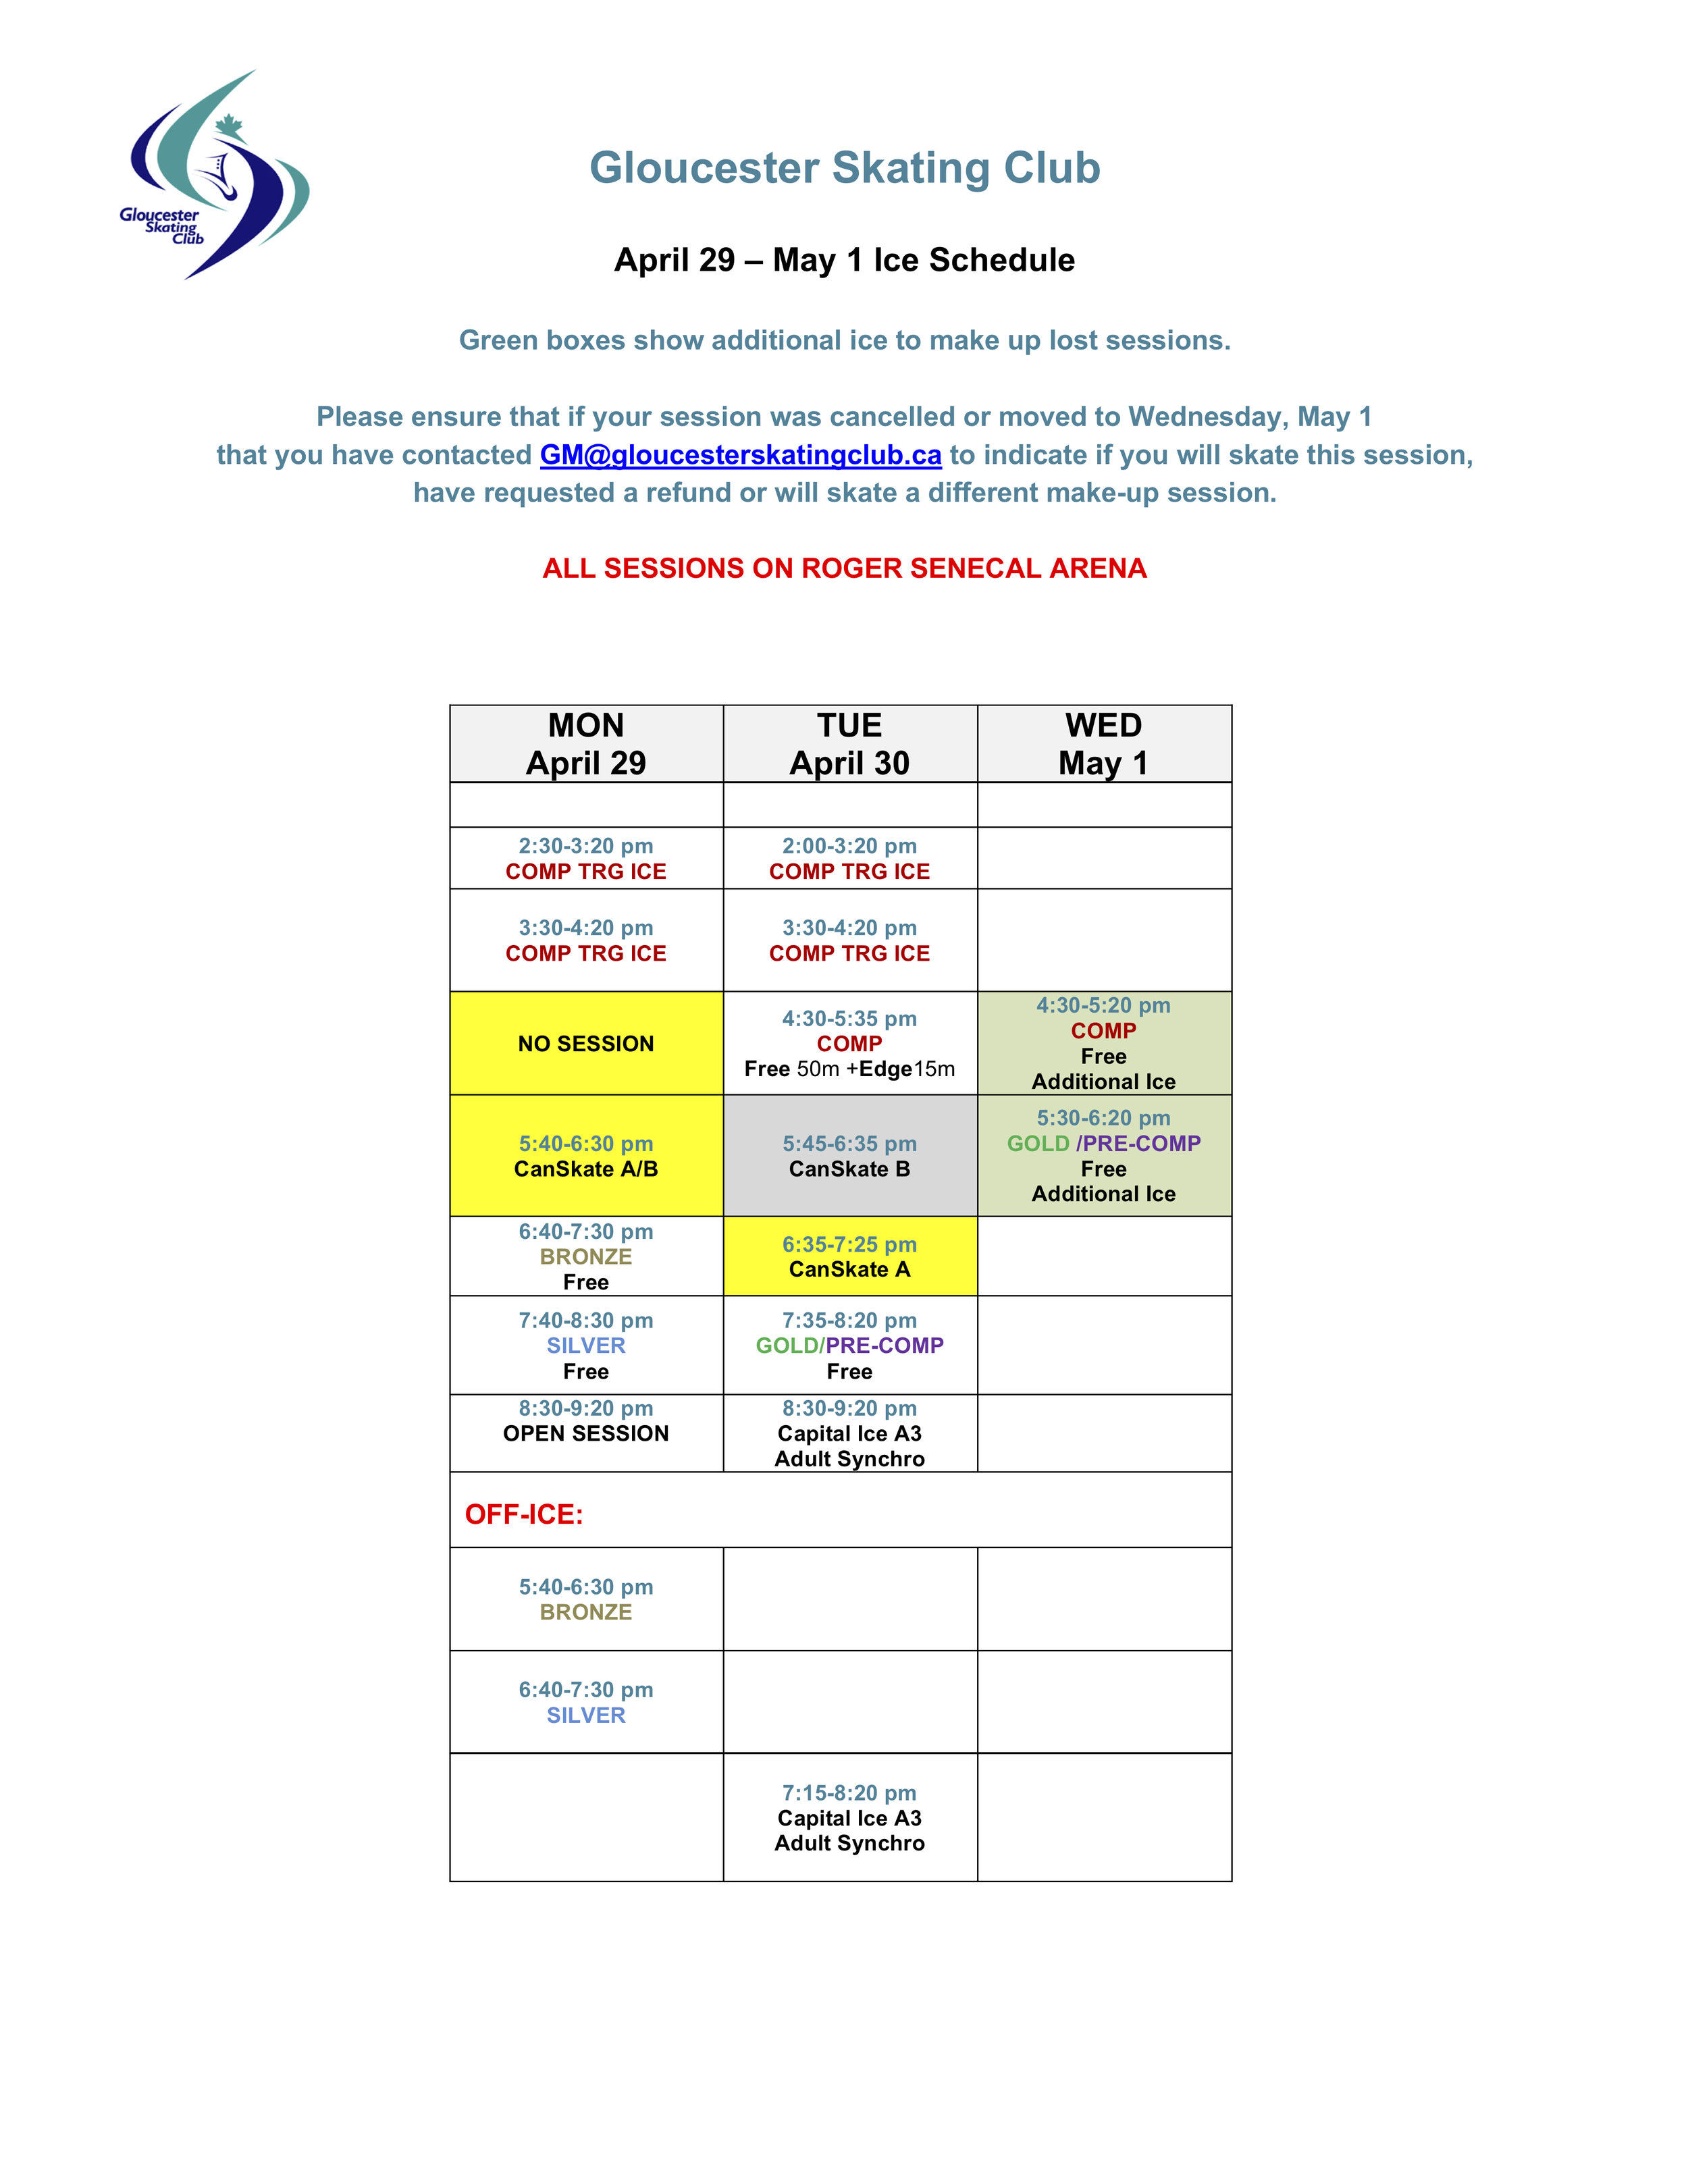 April 29 - May 1 Special Schedule BG.jpg